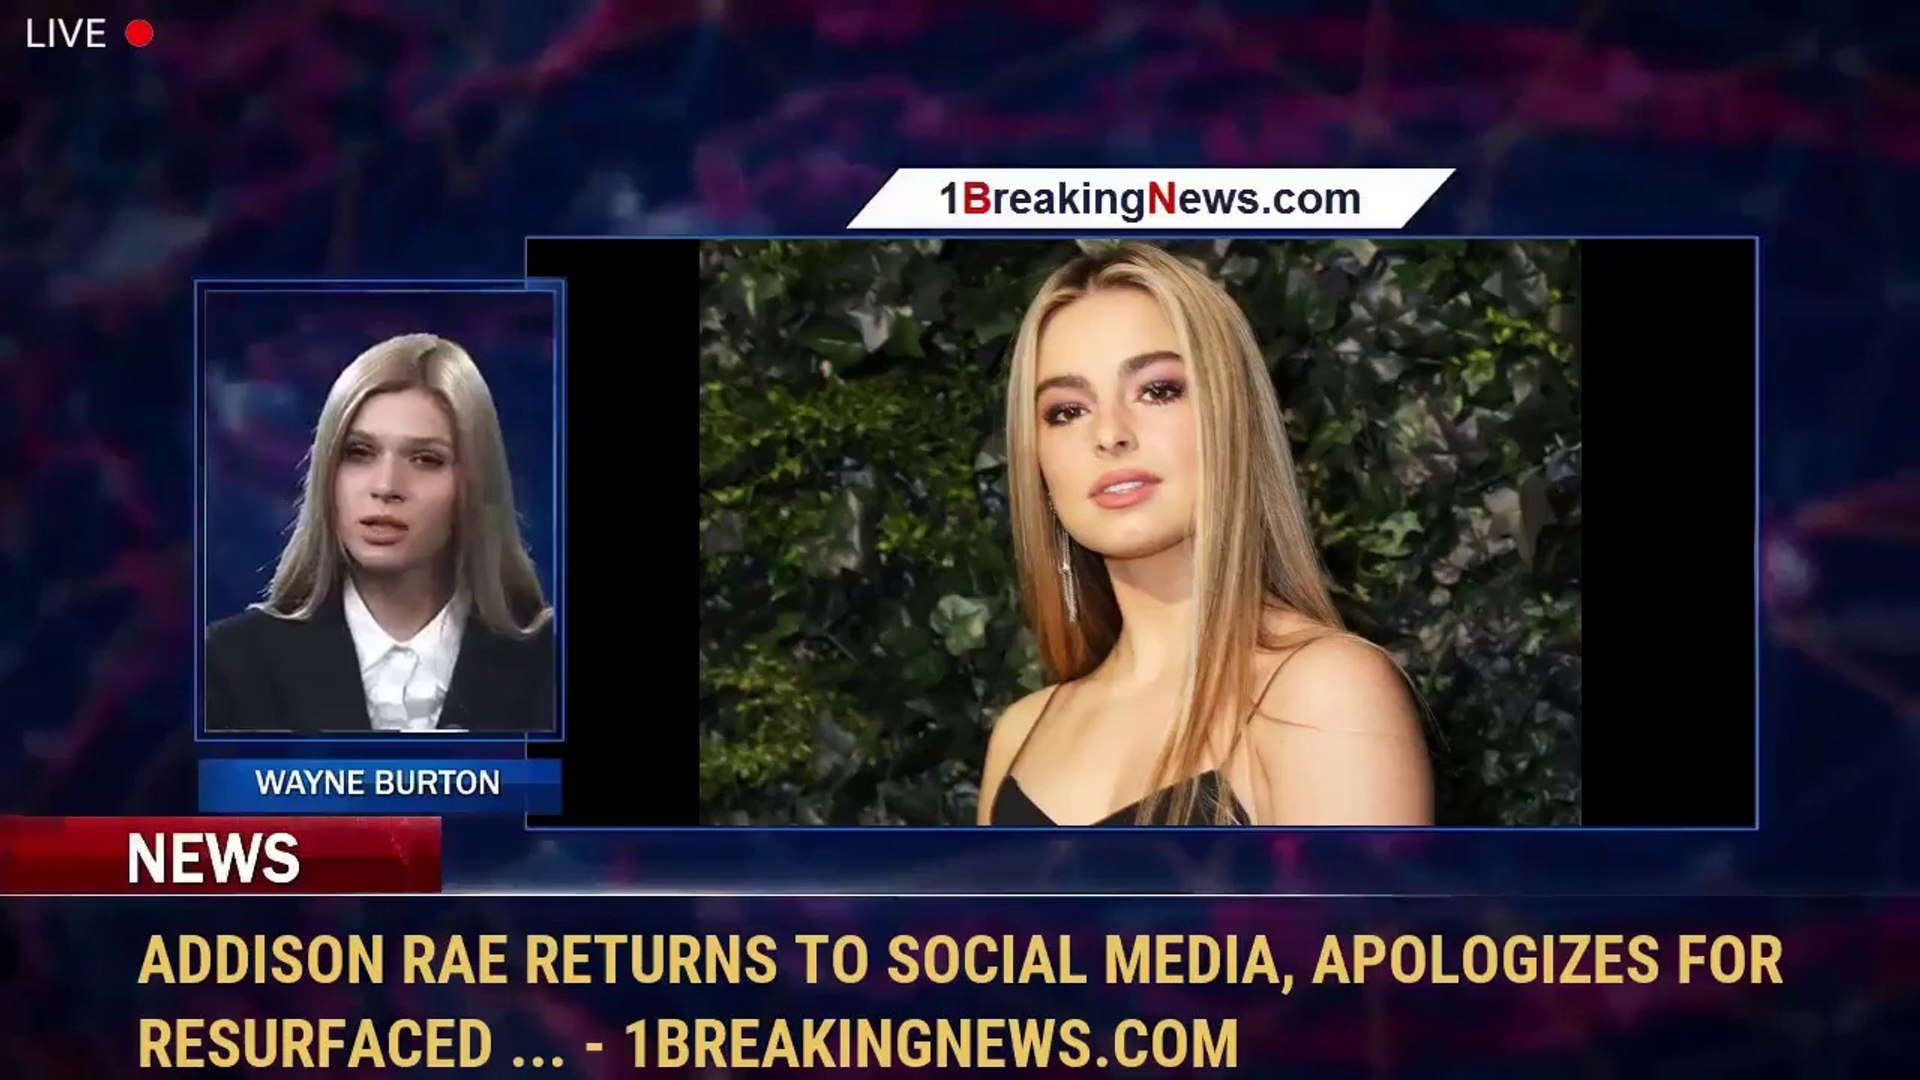 Addison Rae Returns To Social Media Apologizes For Resurfaced 1breakingnews Com Video Dailymotion